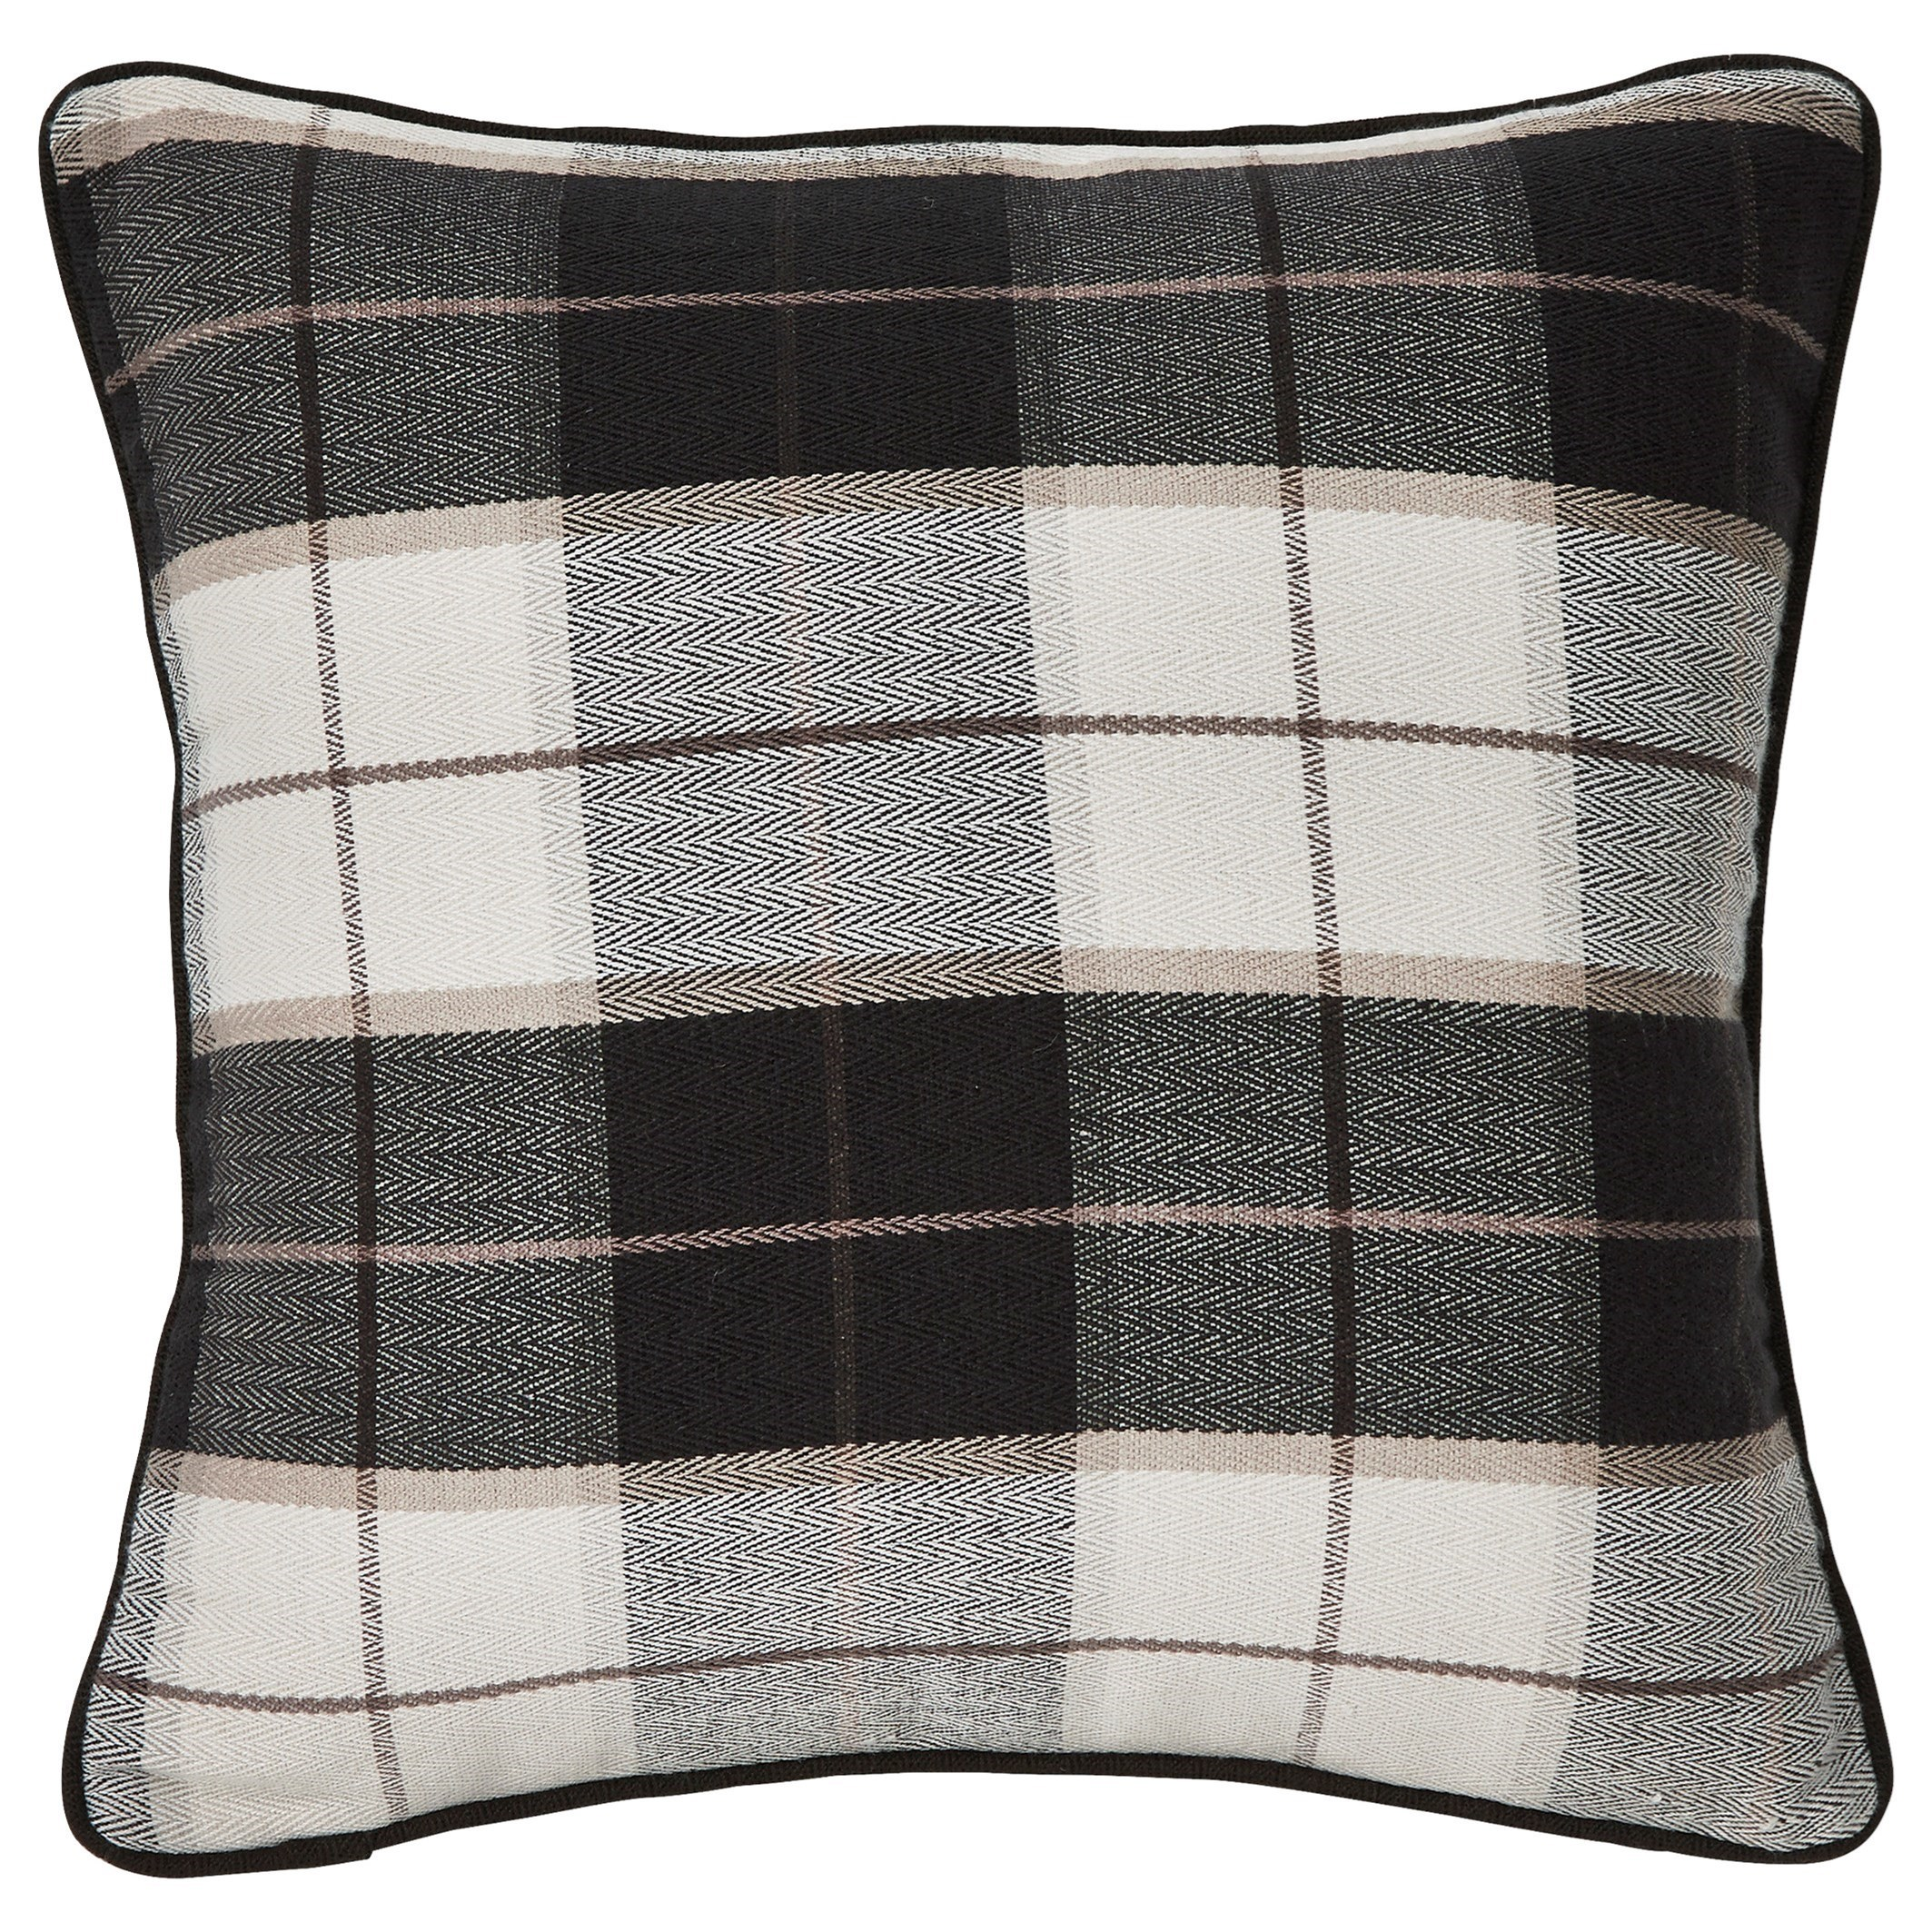 Signature Design by Ashley Pillows Raylan - Black Pillow - Item Number: A1000276P